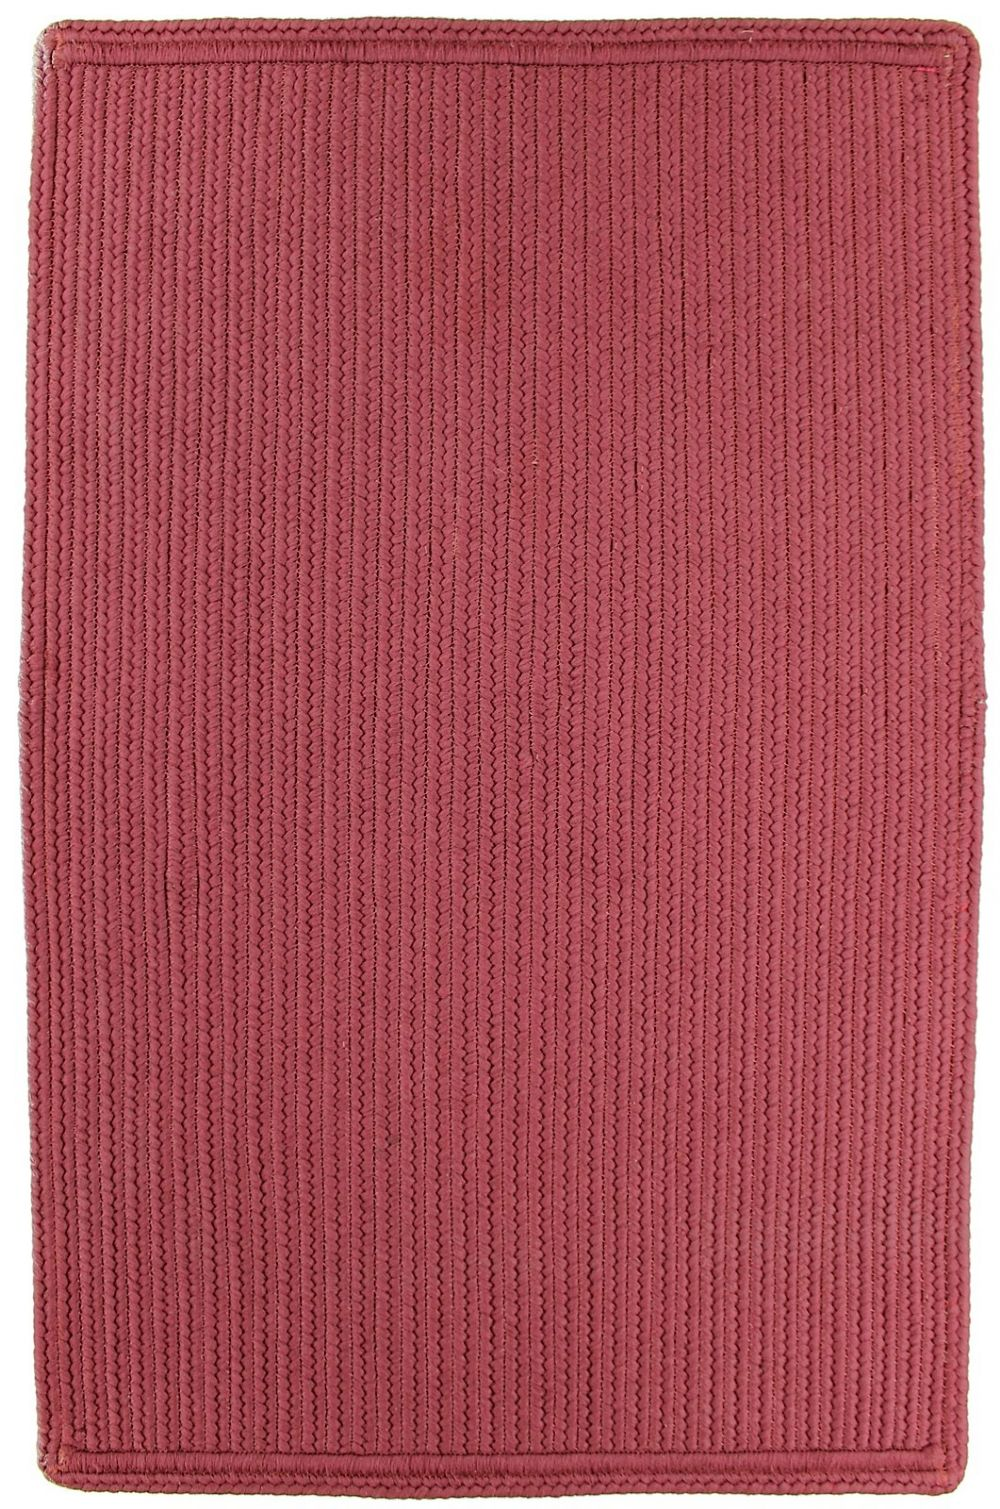 homespice decor plum struck braided area rug collection